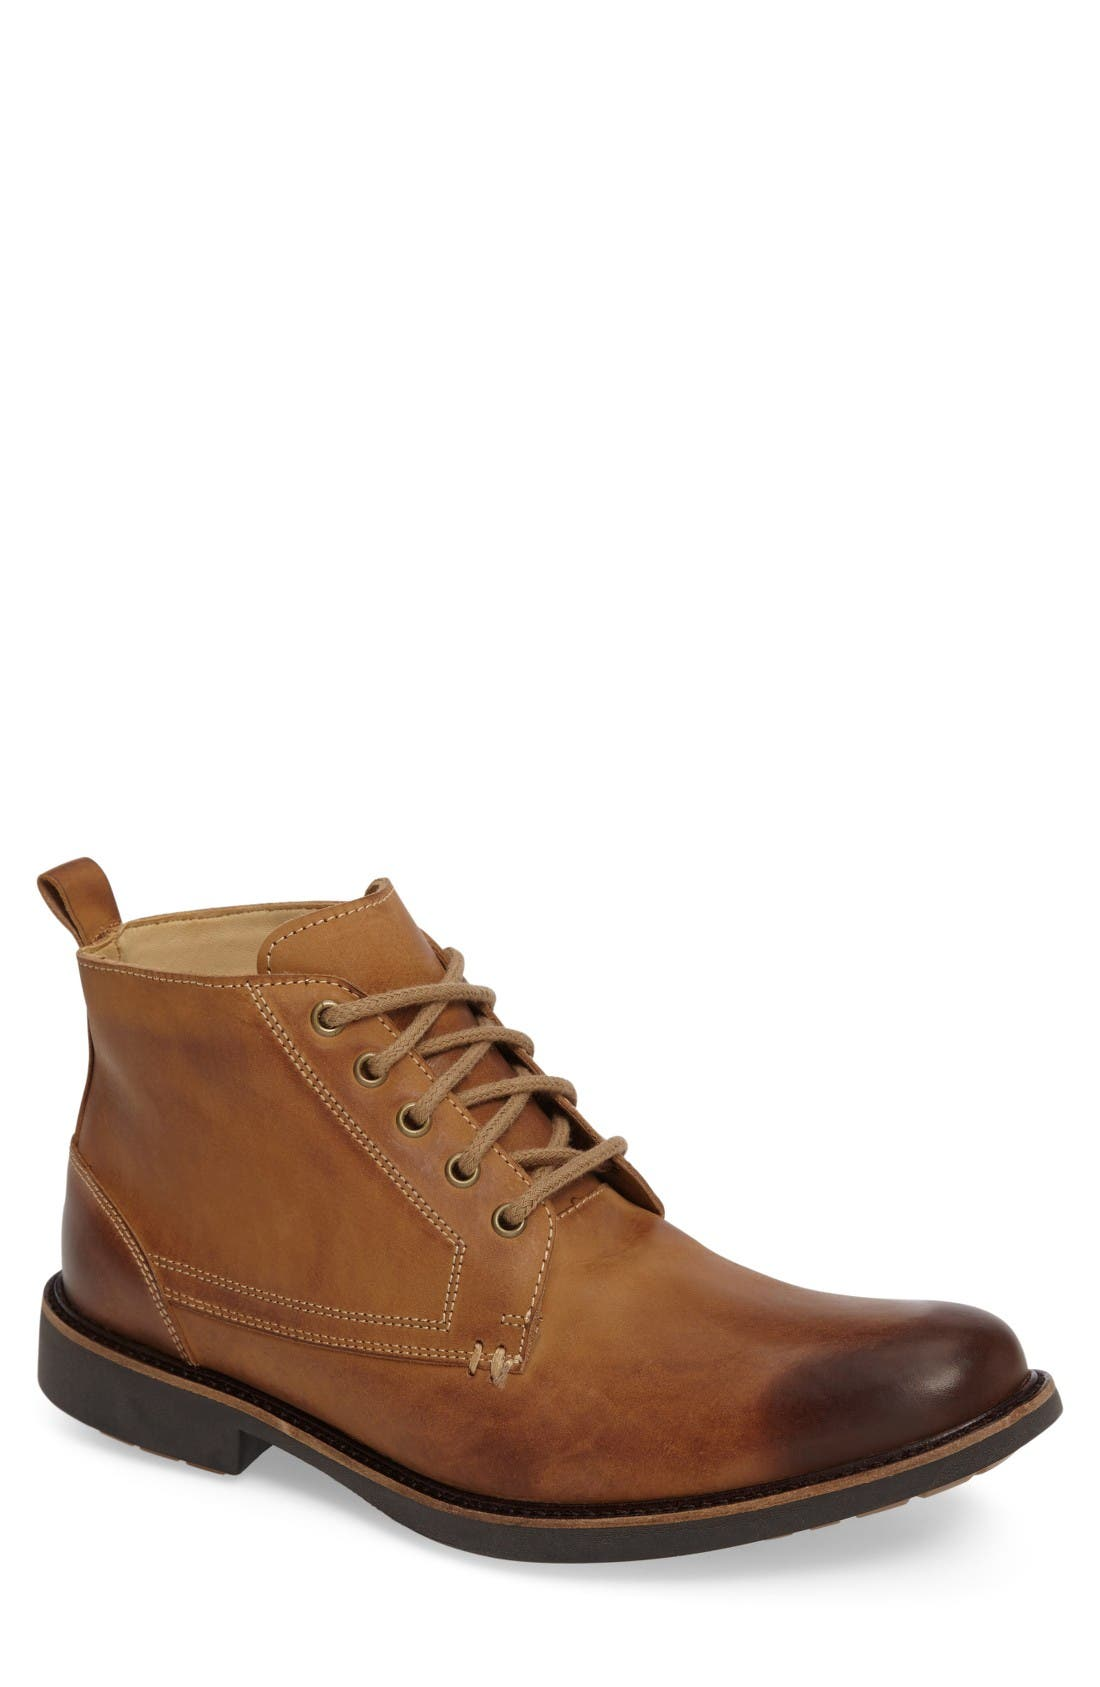 Anatomic & Co. 'Pedras' Boot (Men)